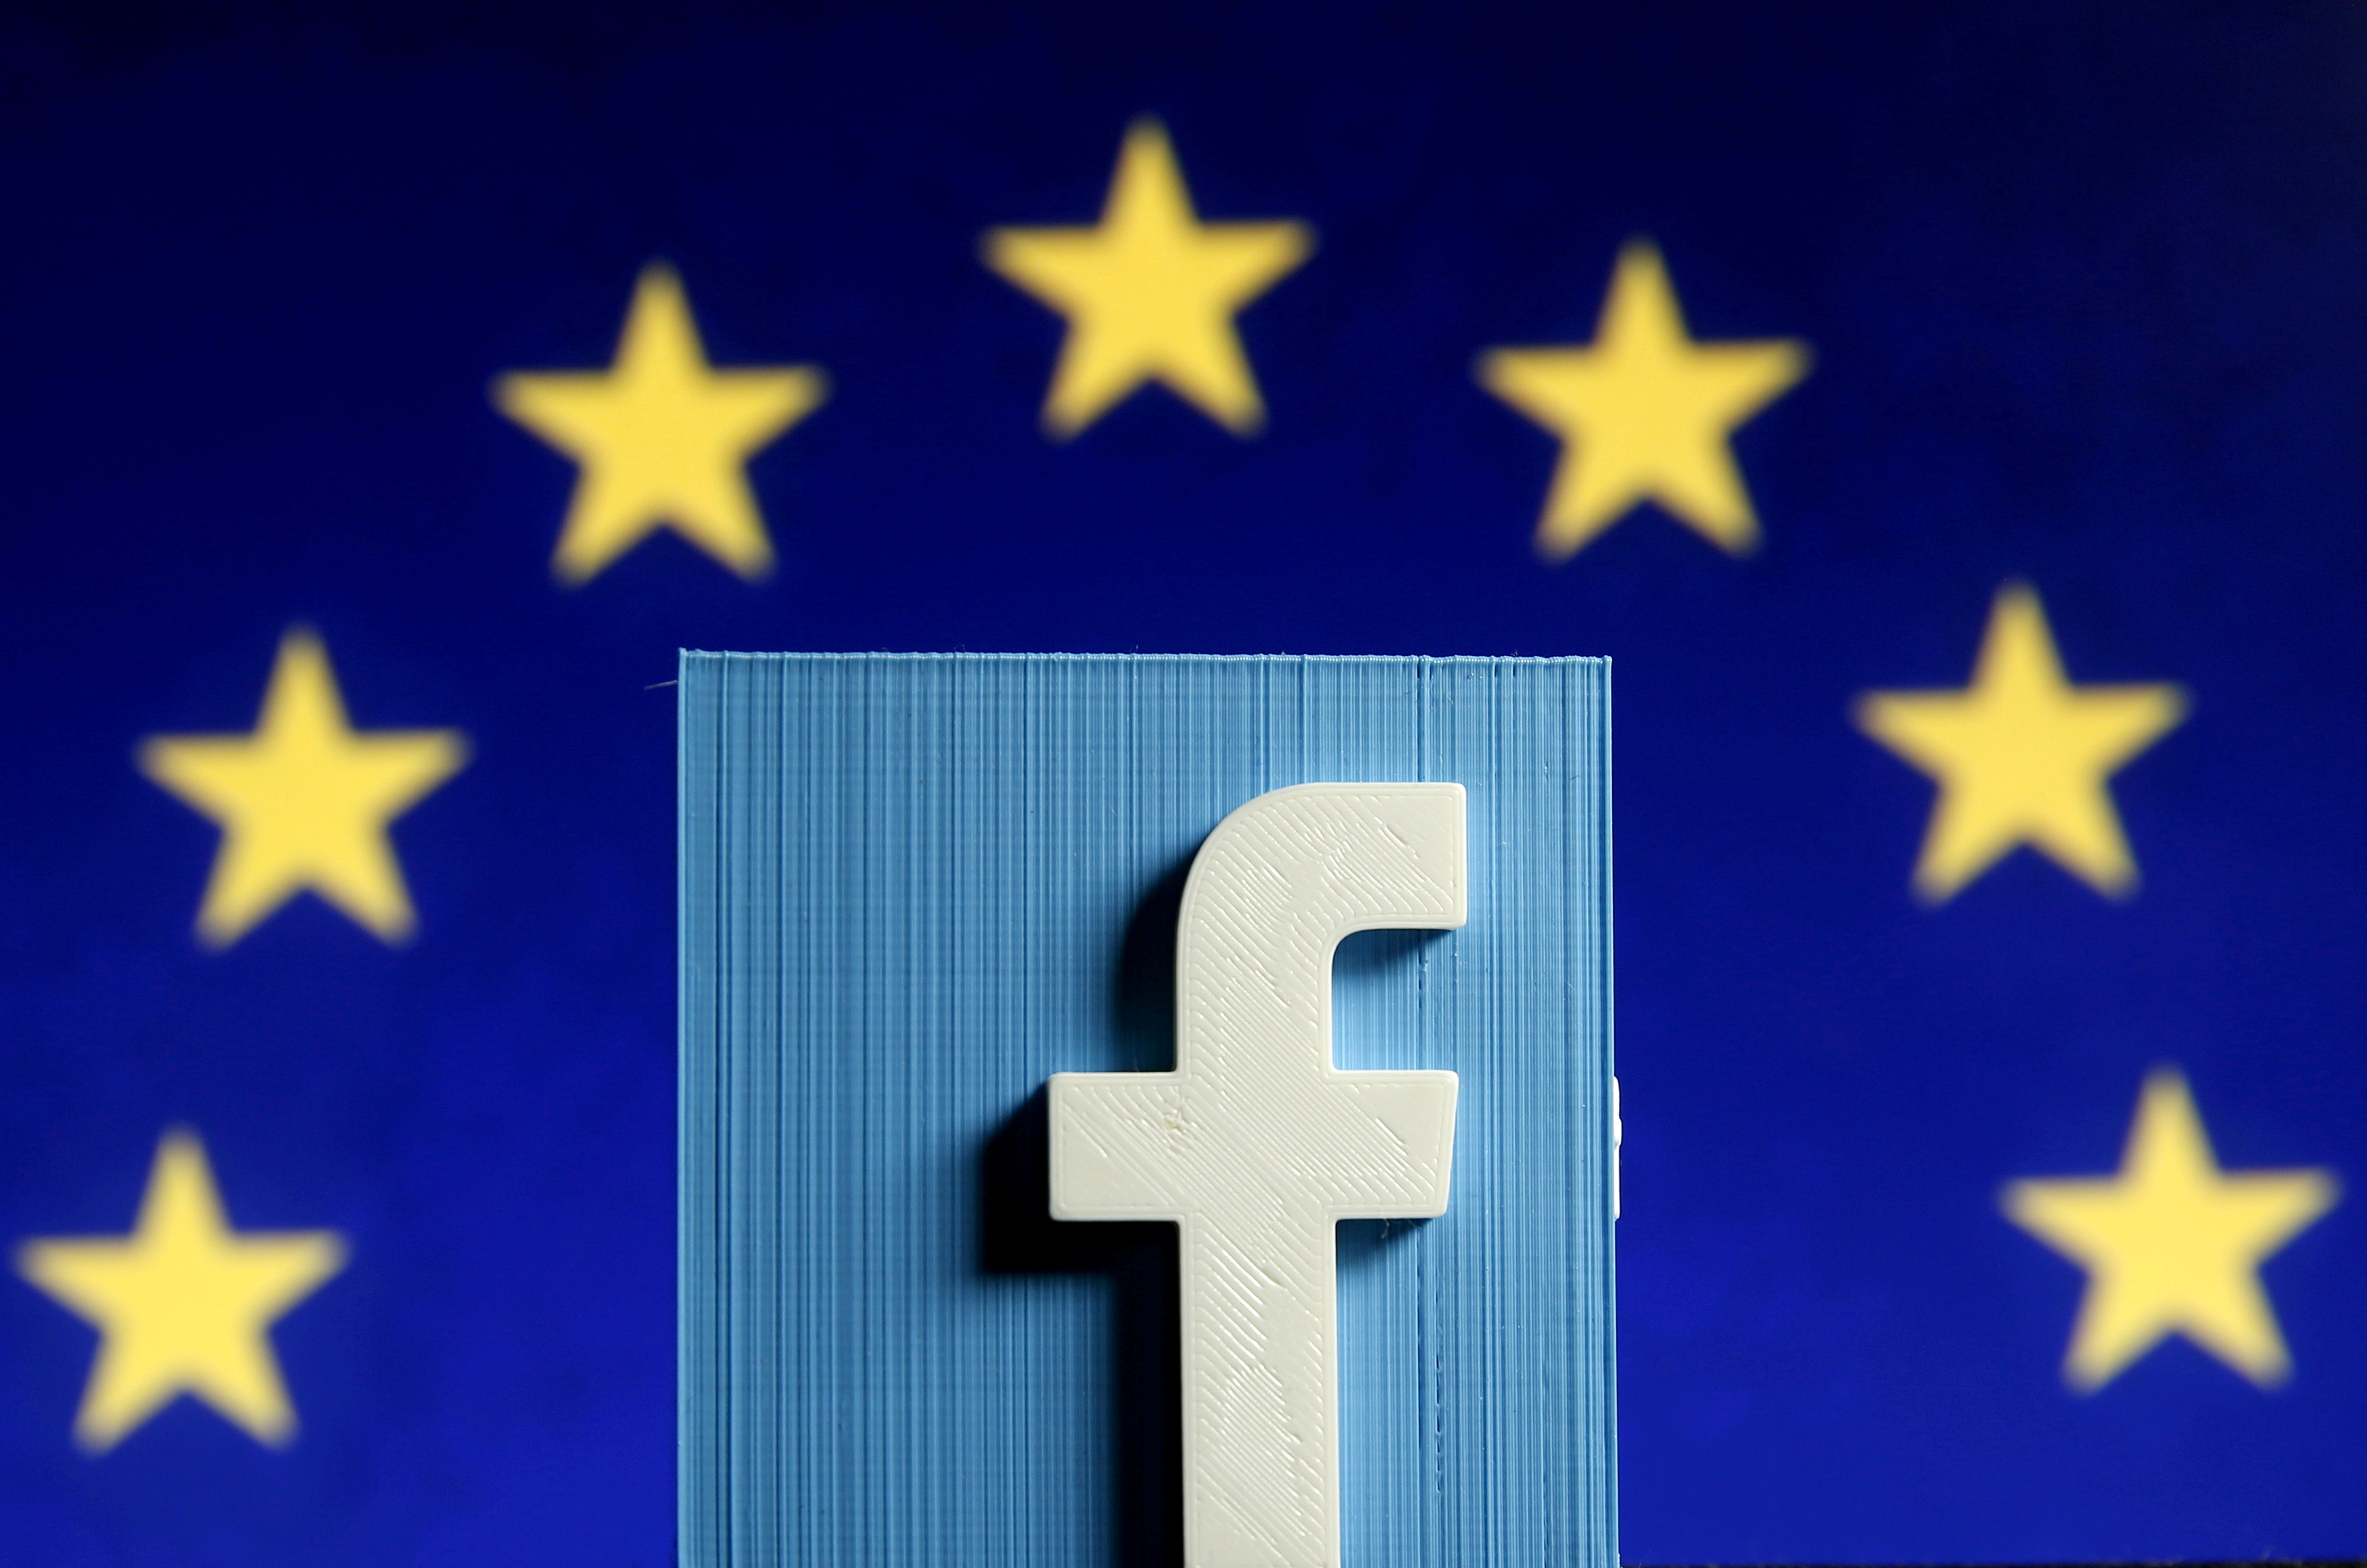 Facebook logo in 3D in front of the EU flag, May 15, 2015.  REUTERS/Dado Ruvic